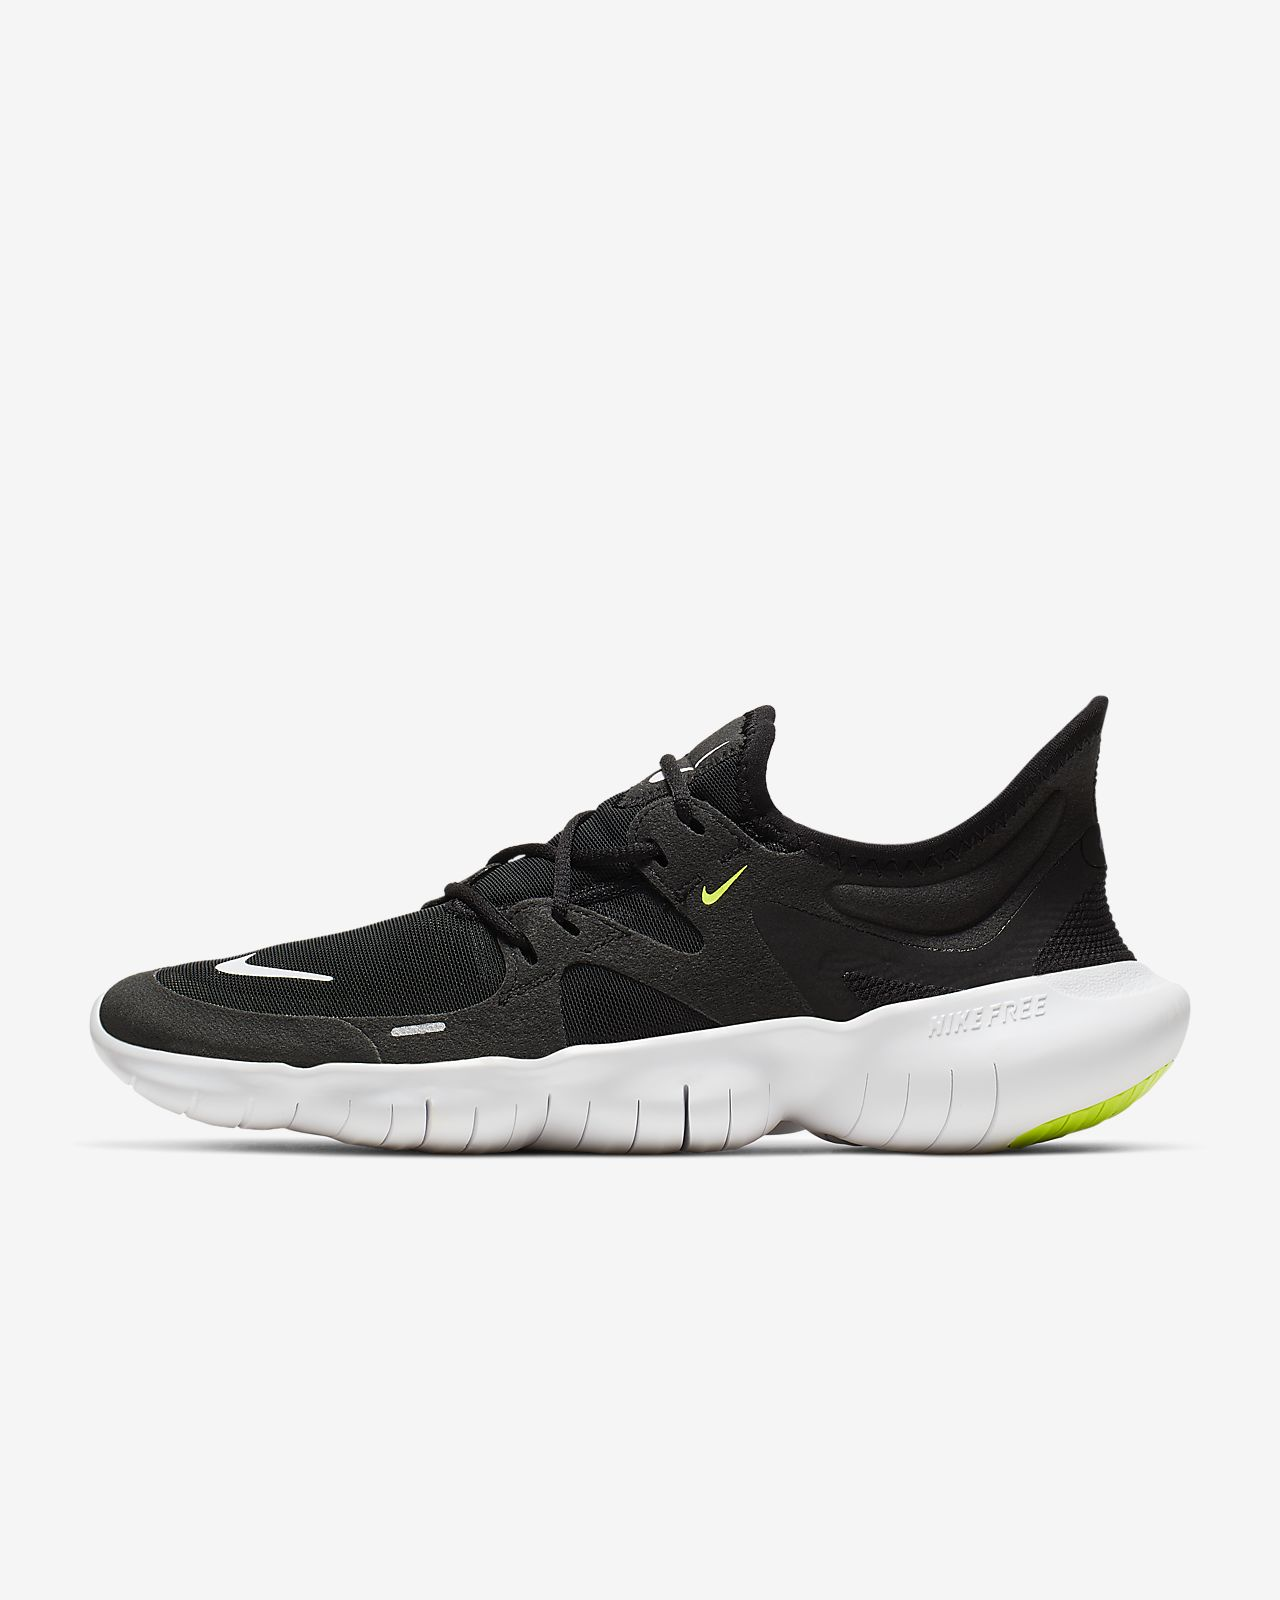 borde Municipios picar  nike free 5.0 opiniones Online Shopping for Women, Men, Kids Fashion &  Lifestyle|Free Delivery & Returns